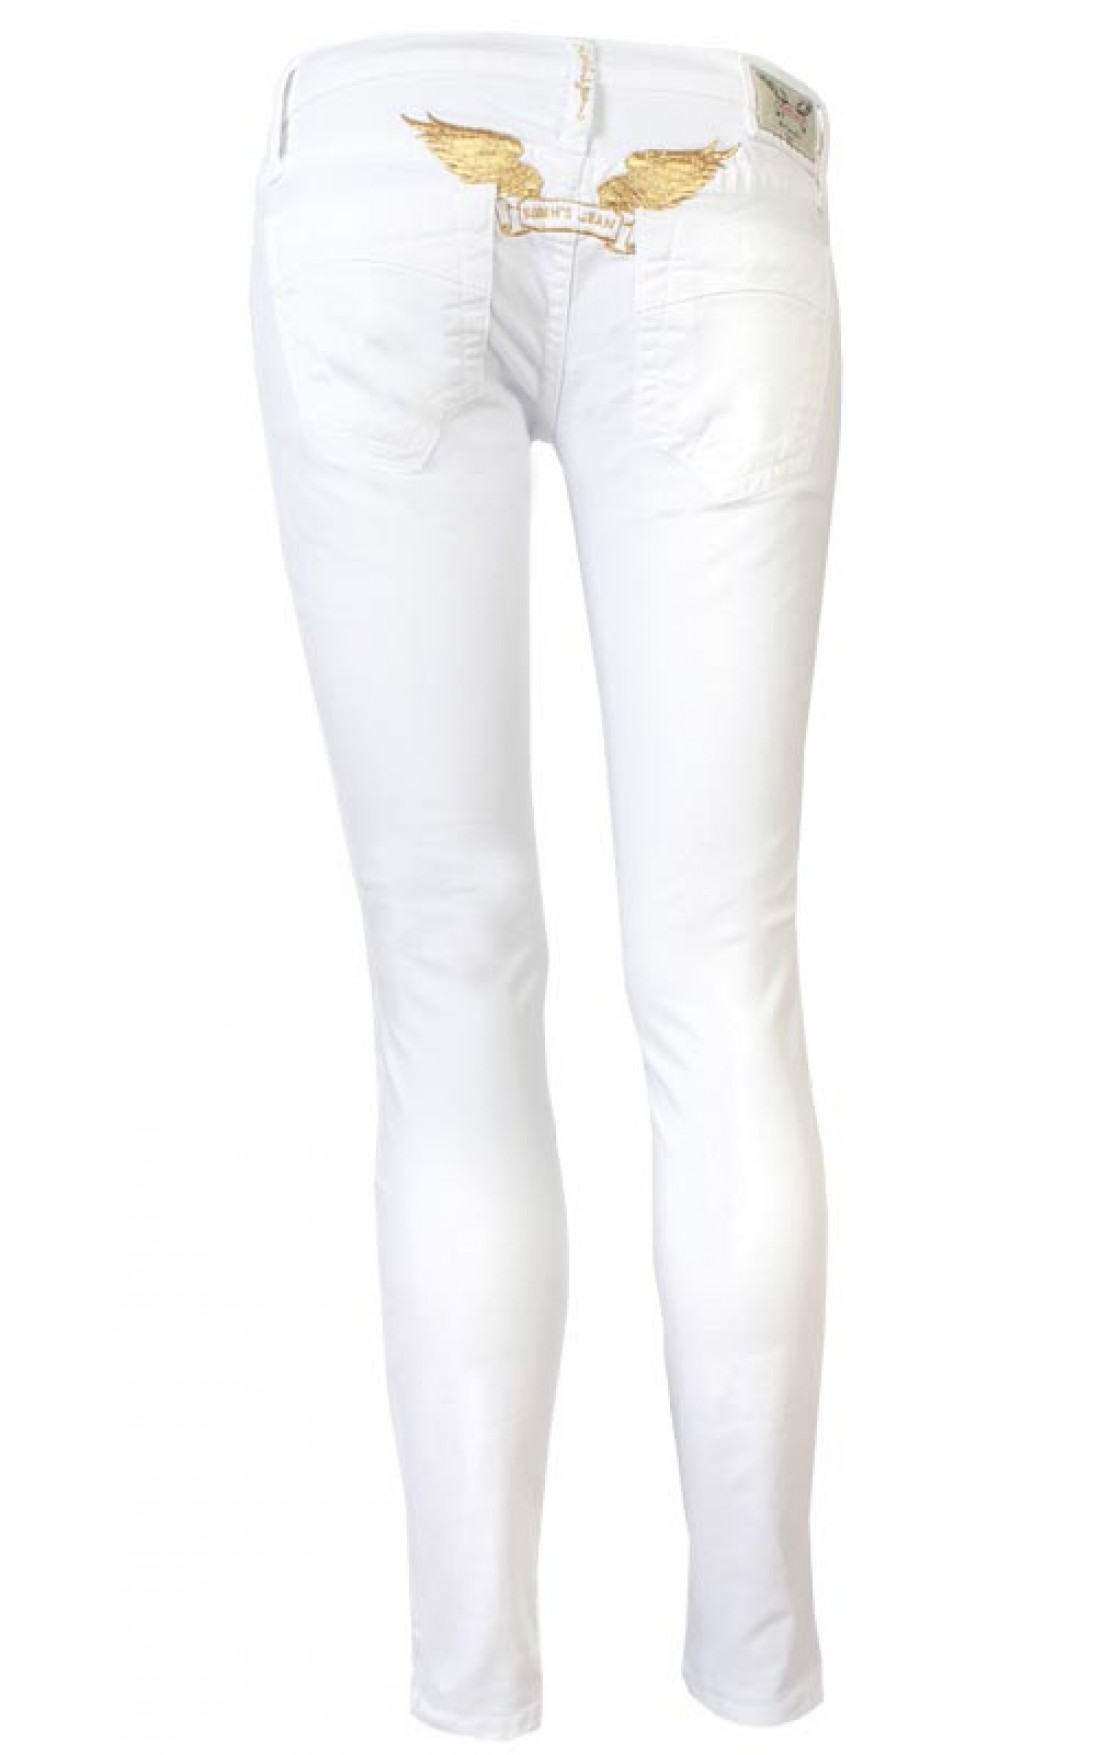 Combining the comfort of a legging with the look of a jean, discover White Stuff Womens jeggings. Our figure flattering jeggings come in a variety of washes, from dark charcoal to inky blue and pale grey.